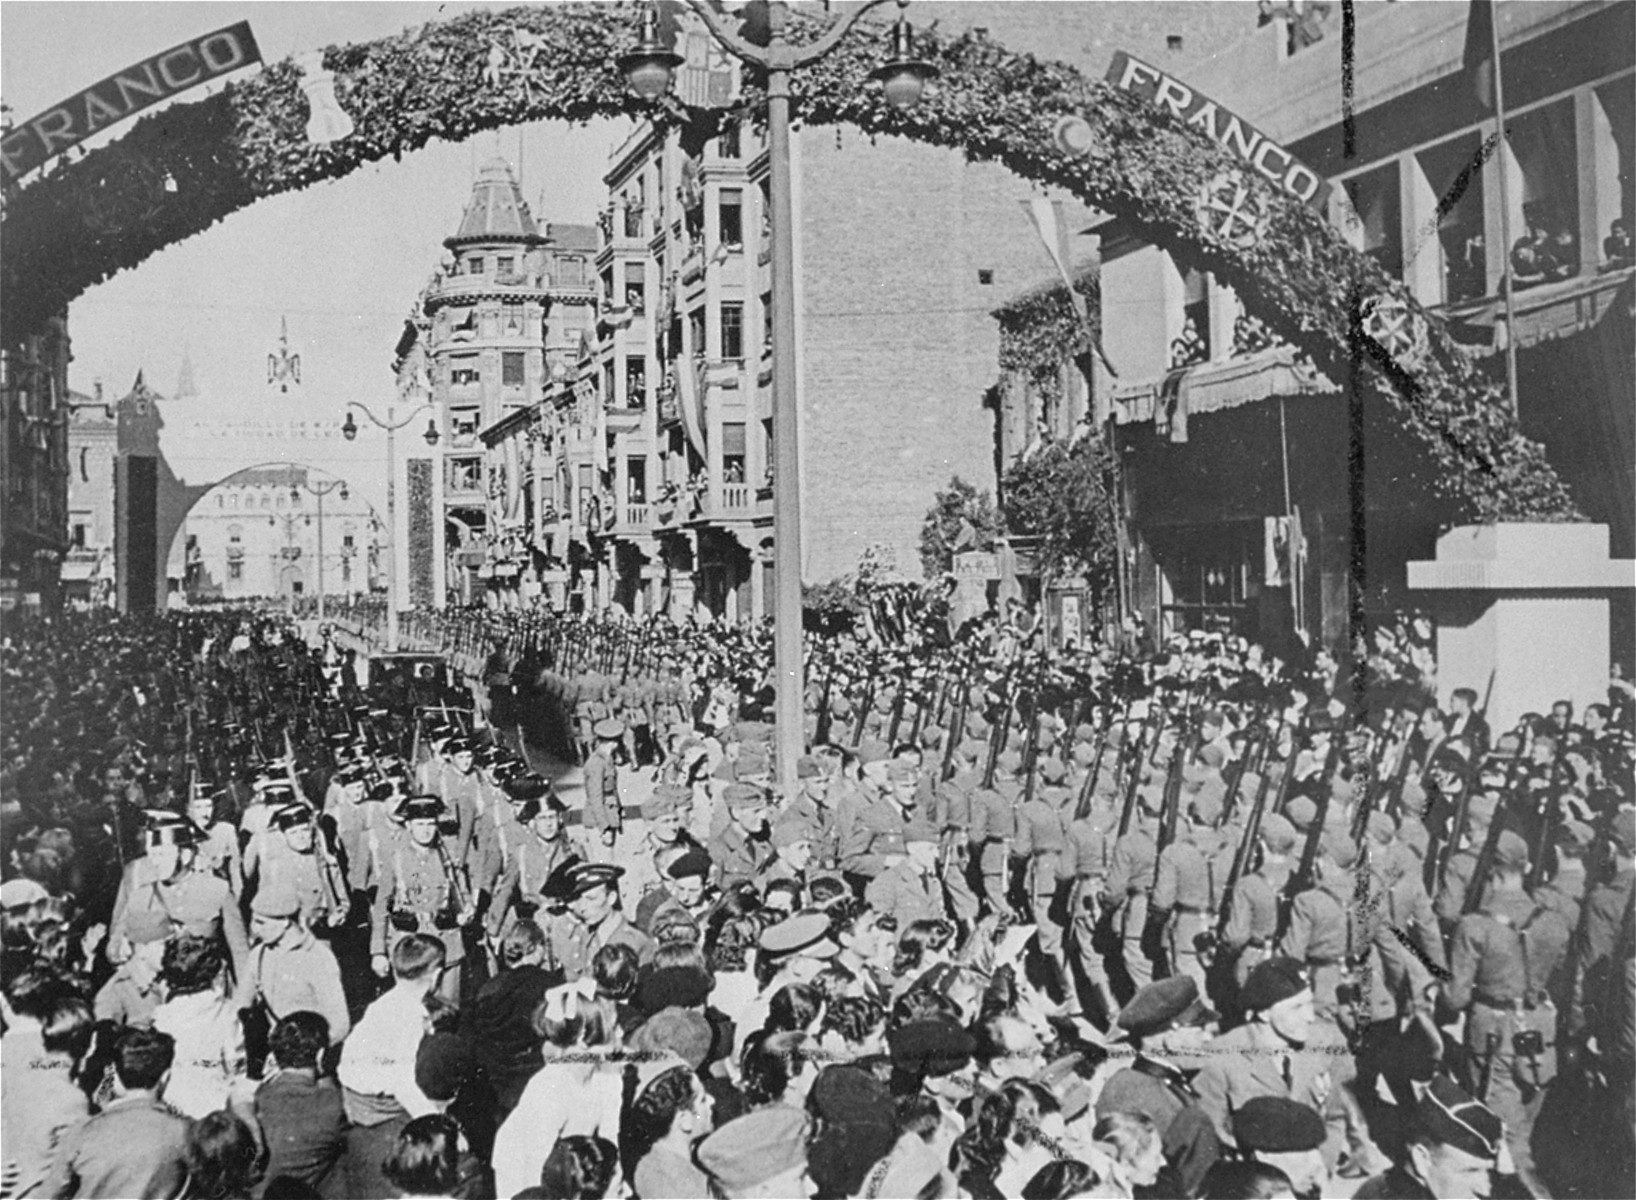 German troops, sent to Spain to aid Franco in his fight against Republican forces, march through a Spanish city.